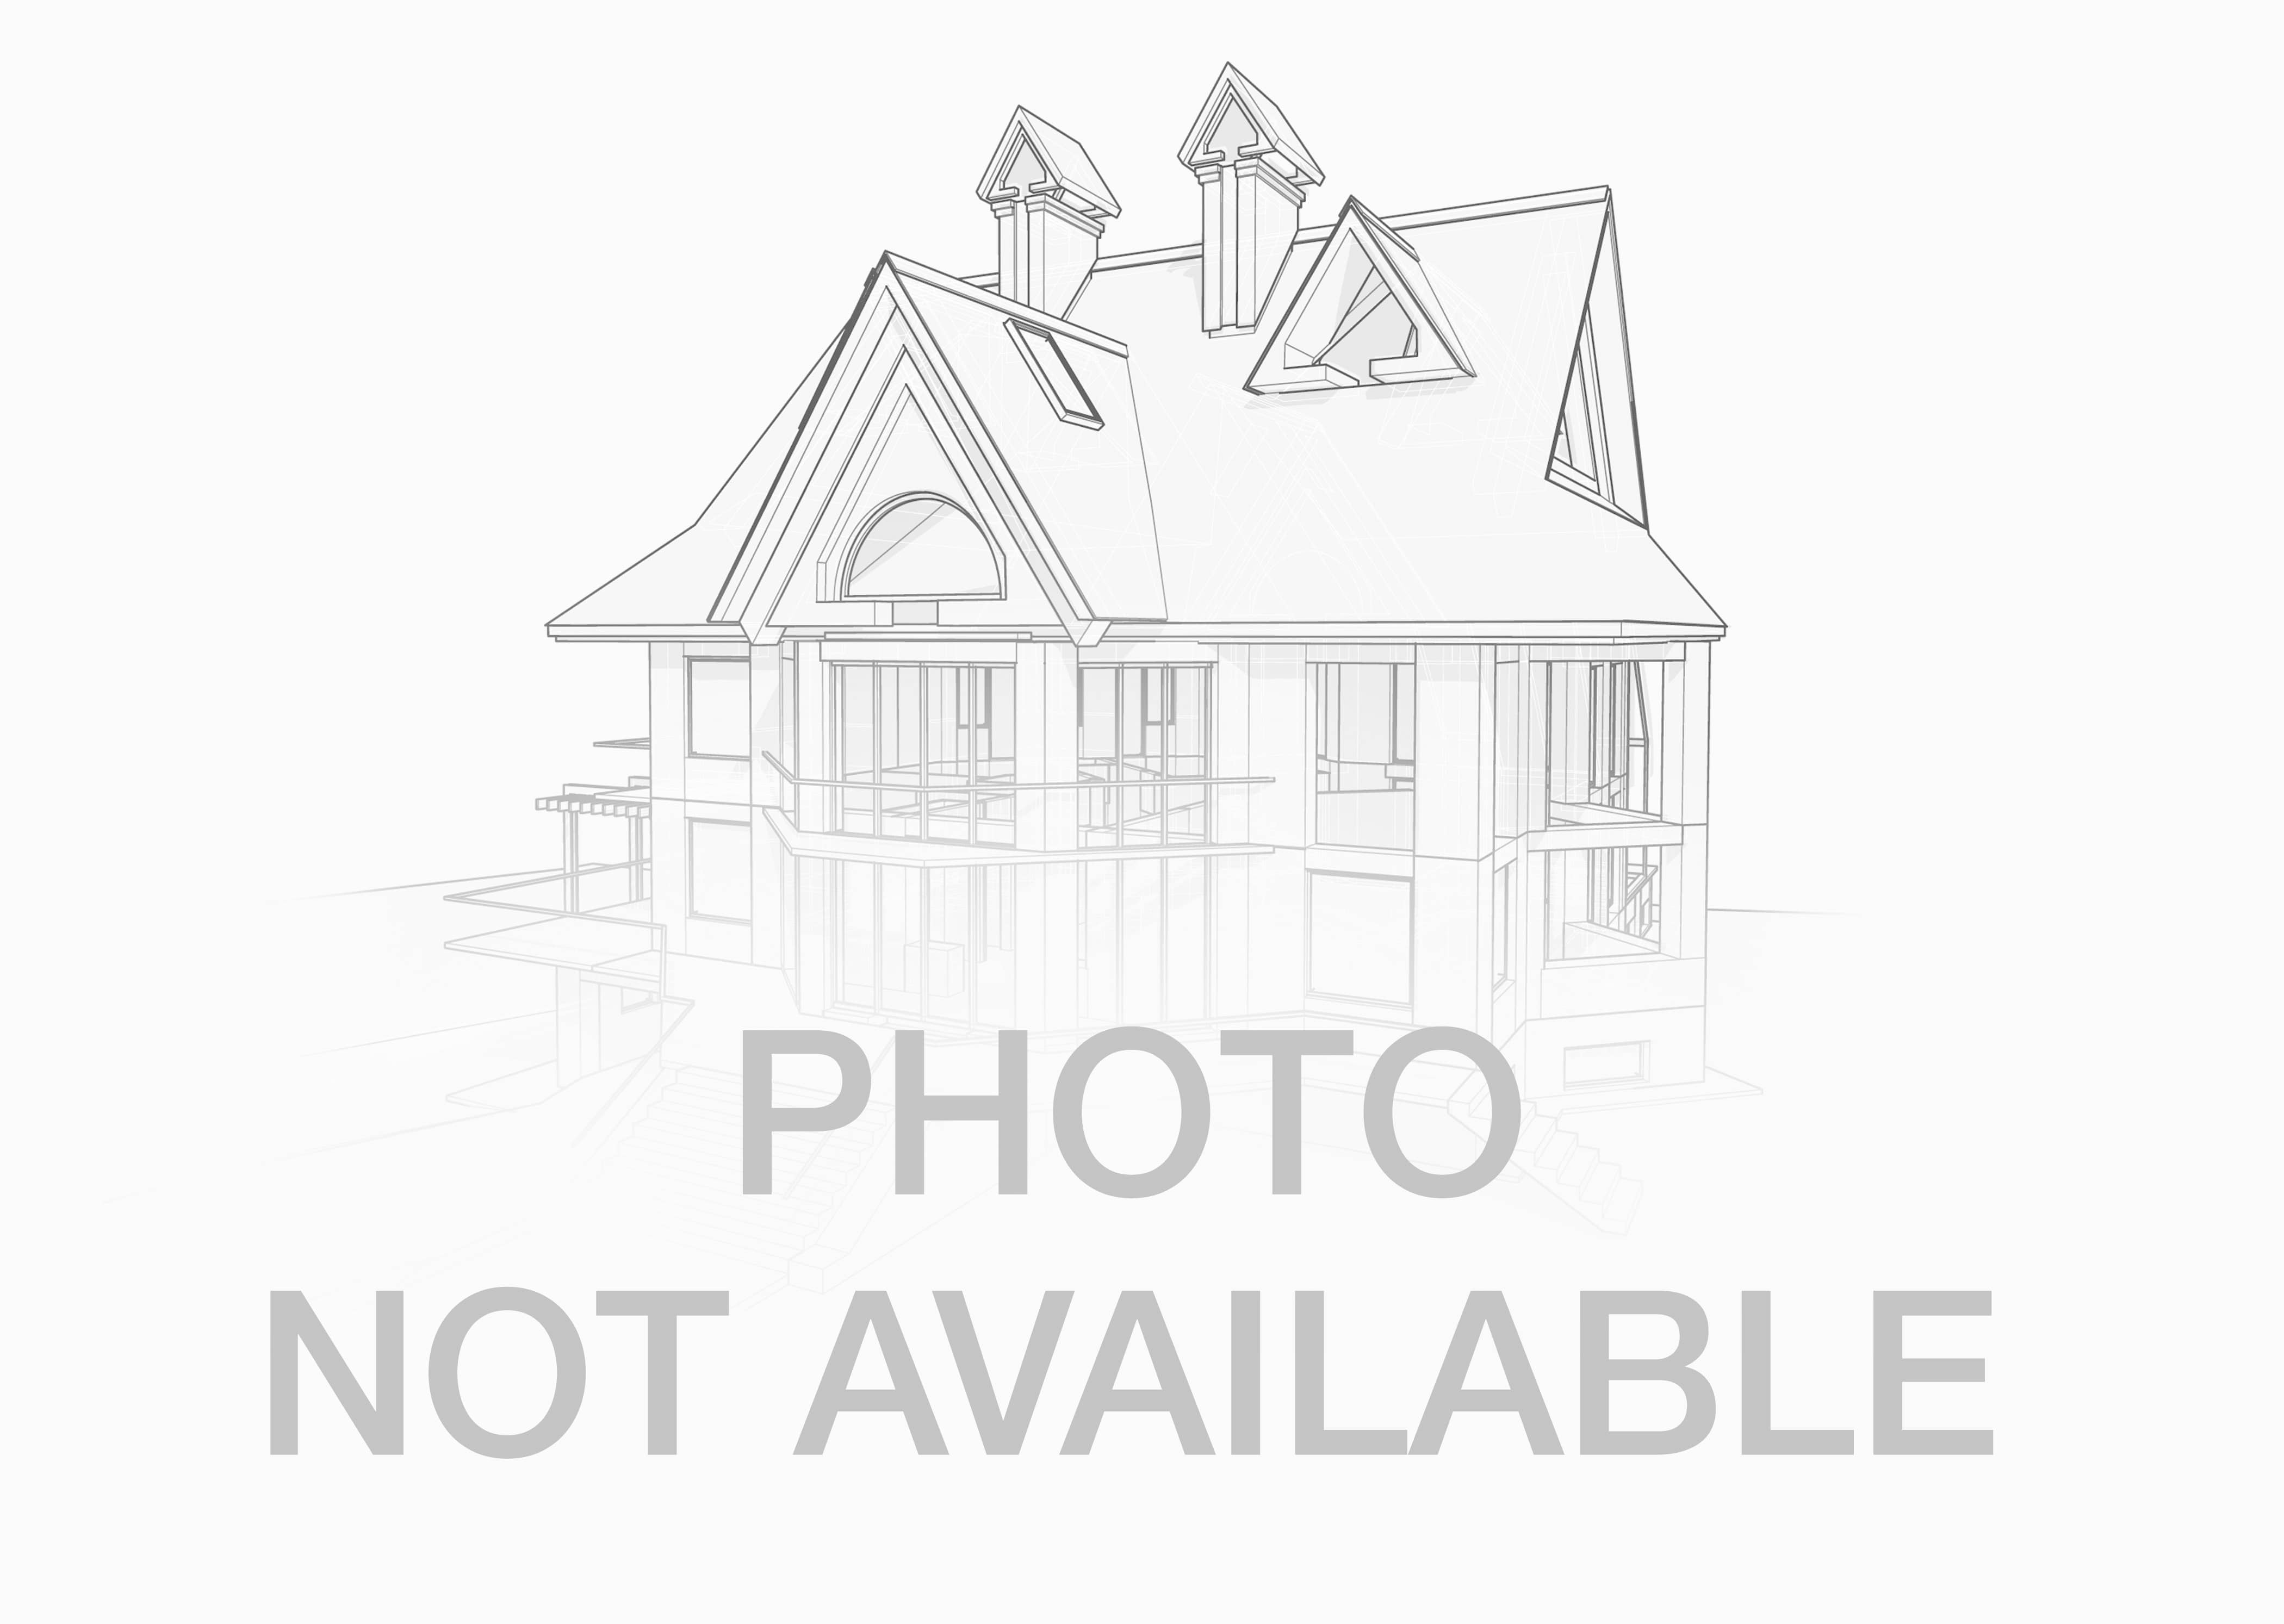 richardsville singles Search richardsville real estate property listings to find homes for sale in richardsville, ky browse houses for sale in richardsville today.